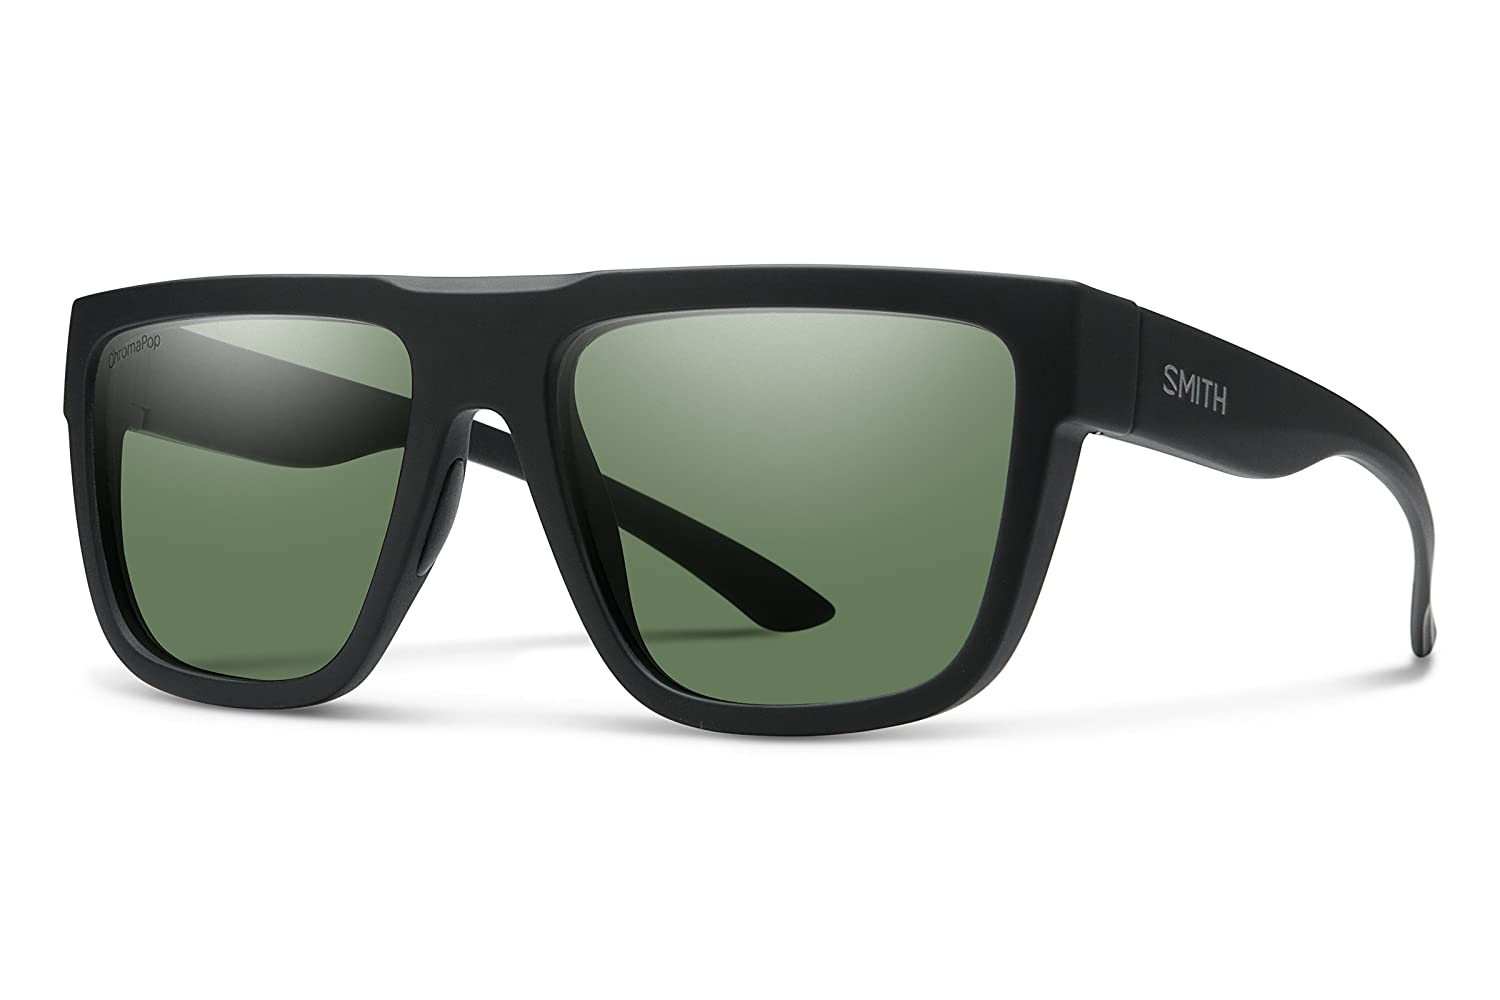 Smith The Comeback Sunglasses /& Cleaning Kit Bundle